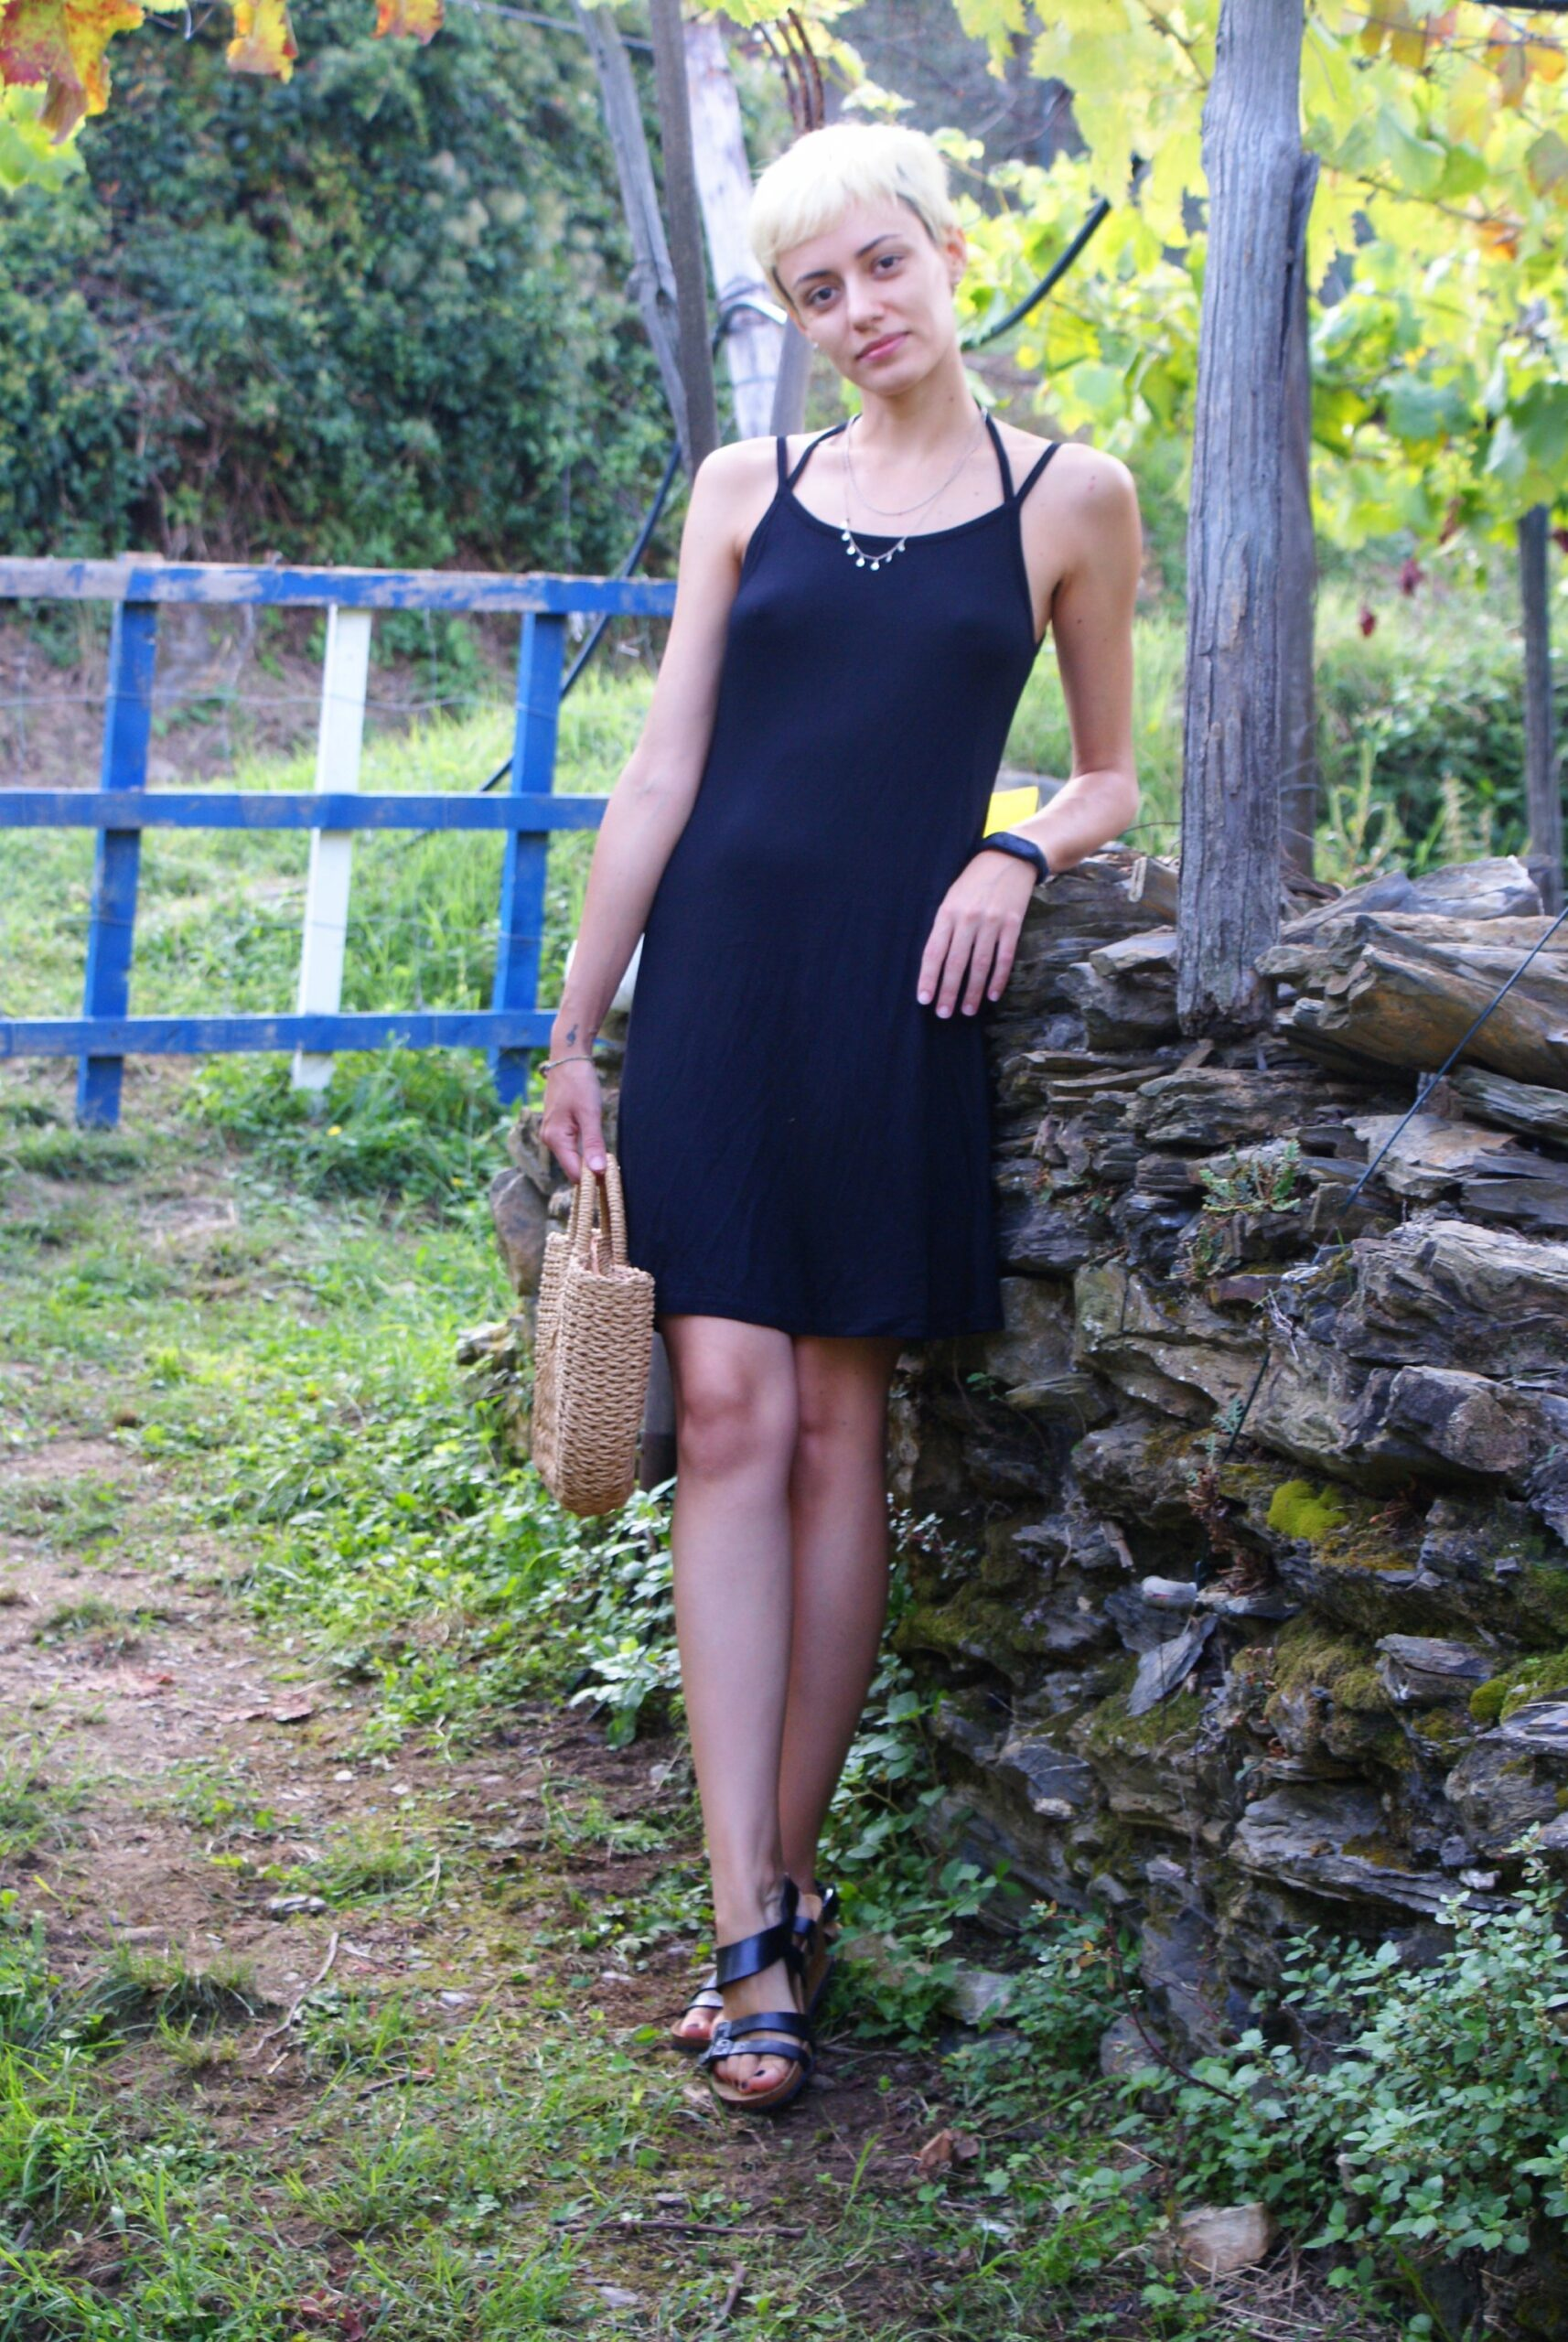 elisa pizzola italia fashion blogger